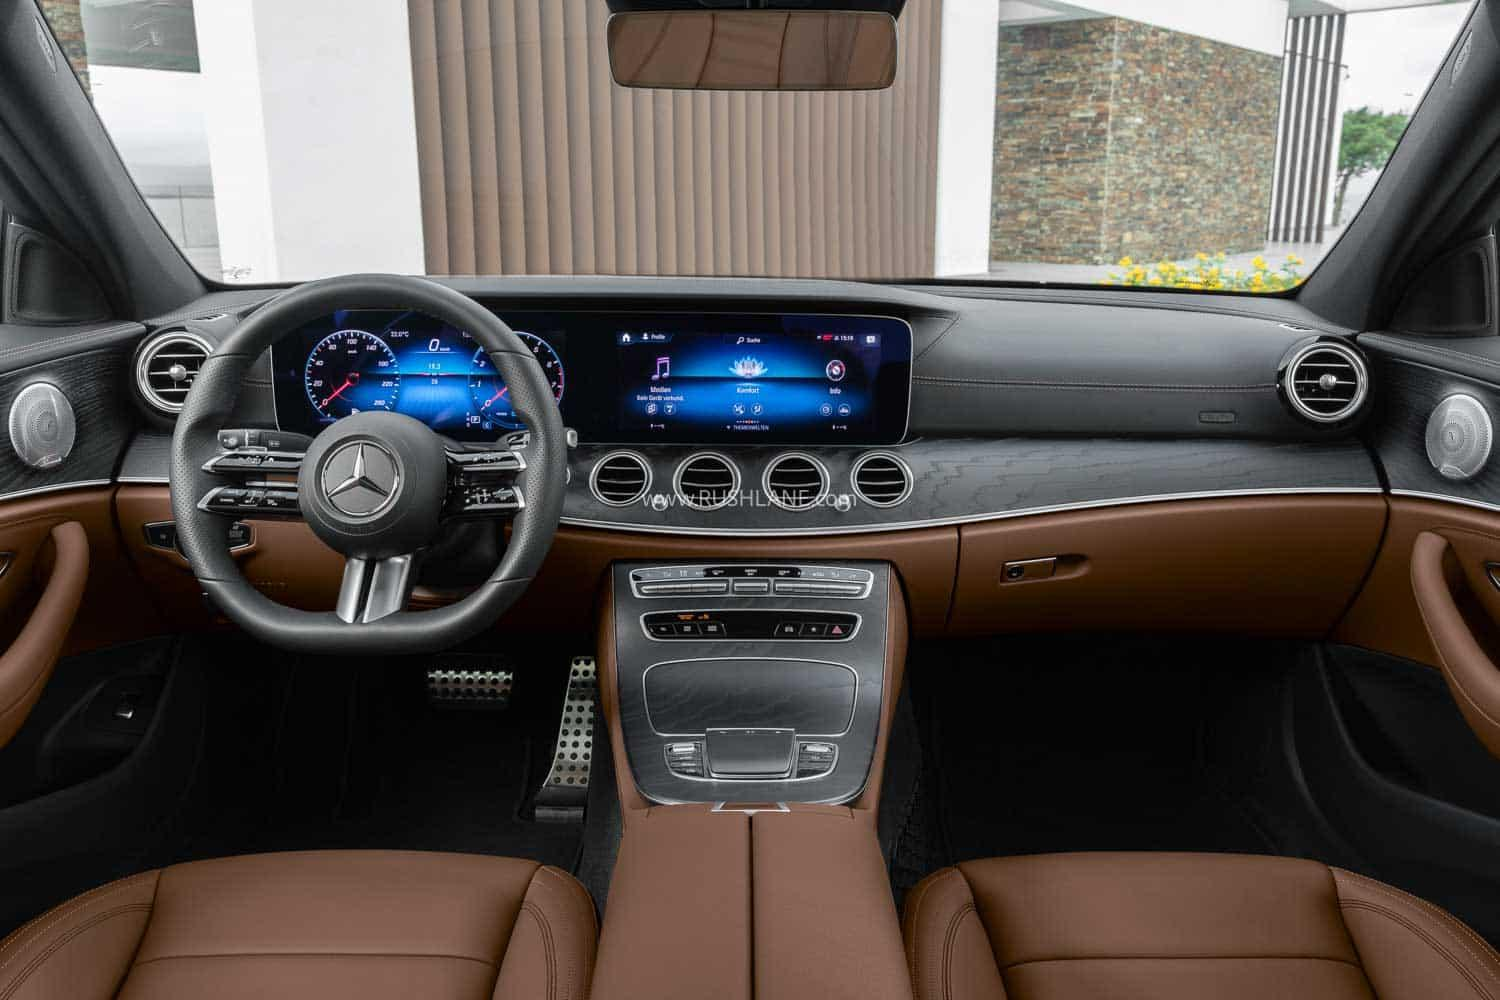 2020 Mercedes E Class Facelift Debuts - India Launch This Year